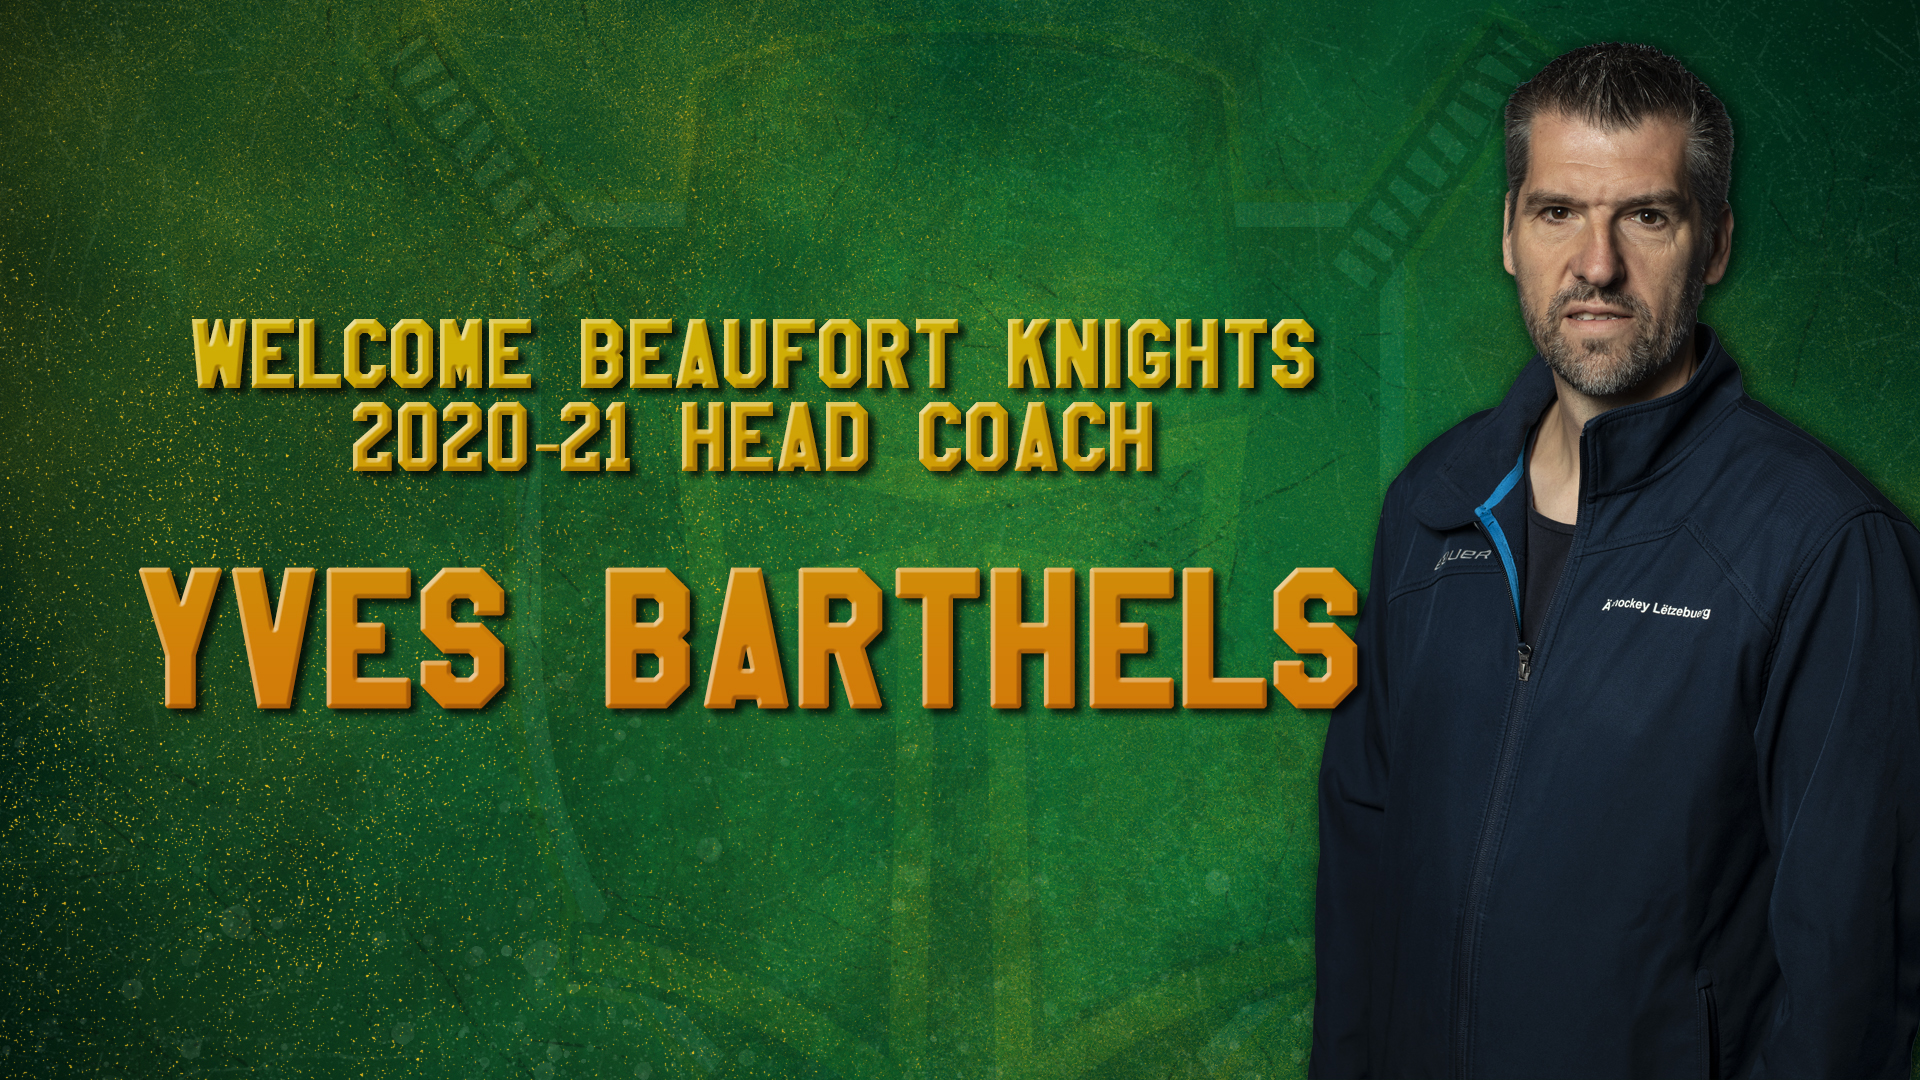 Yves Barthels joins the Knights as 1st team head coach